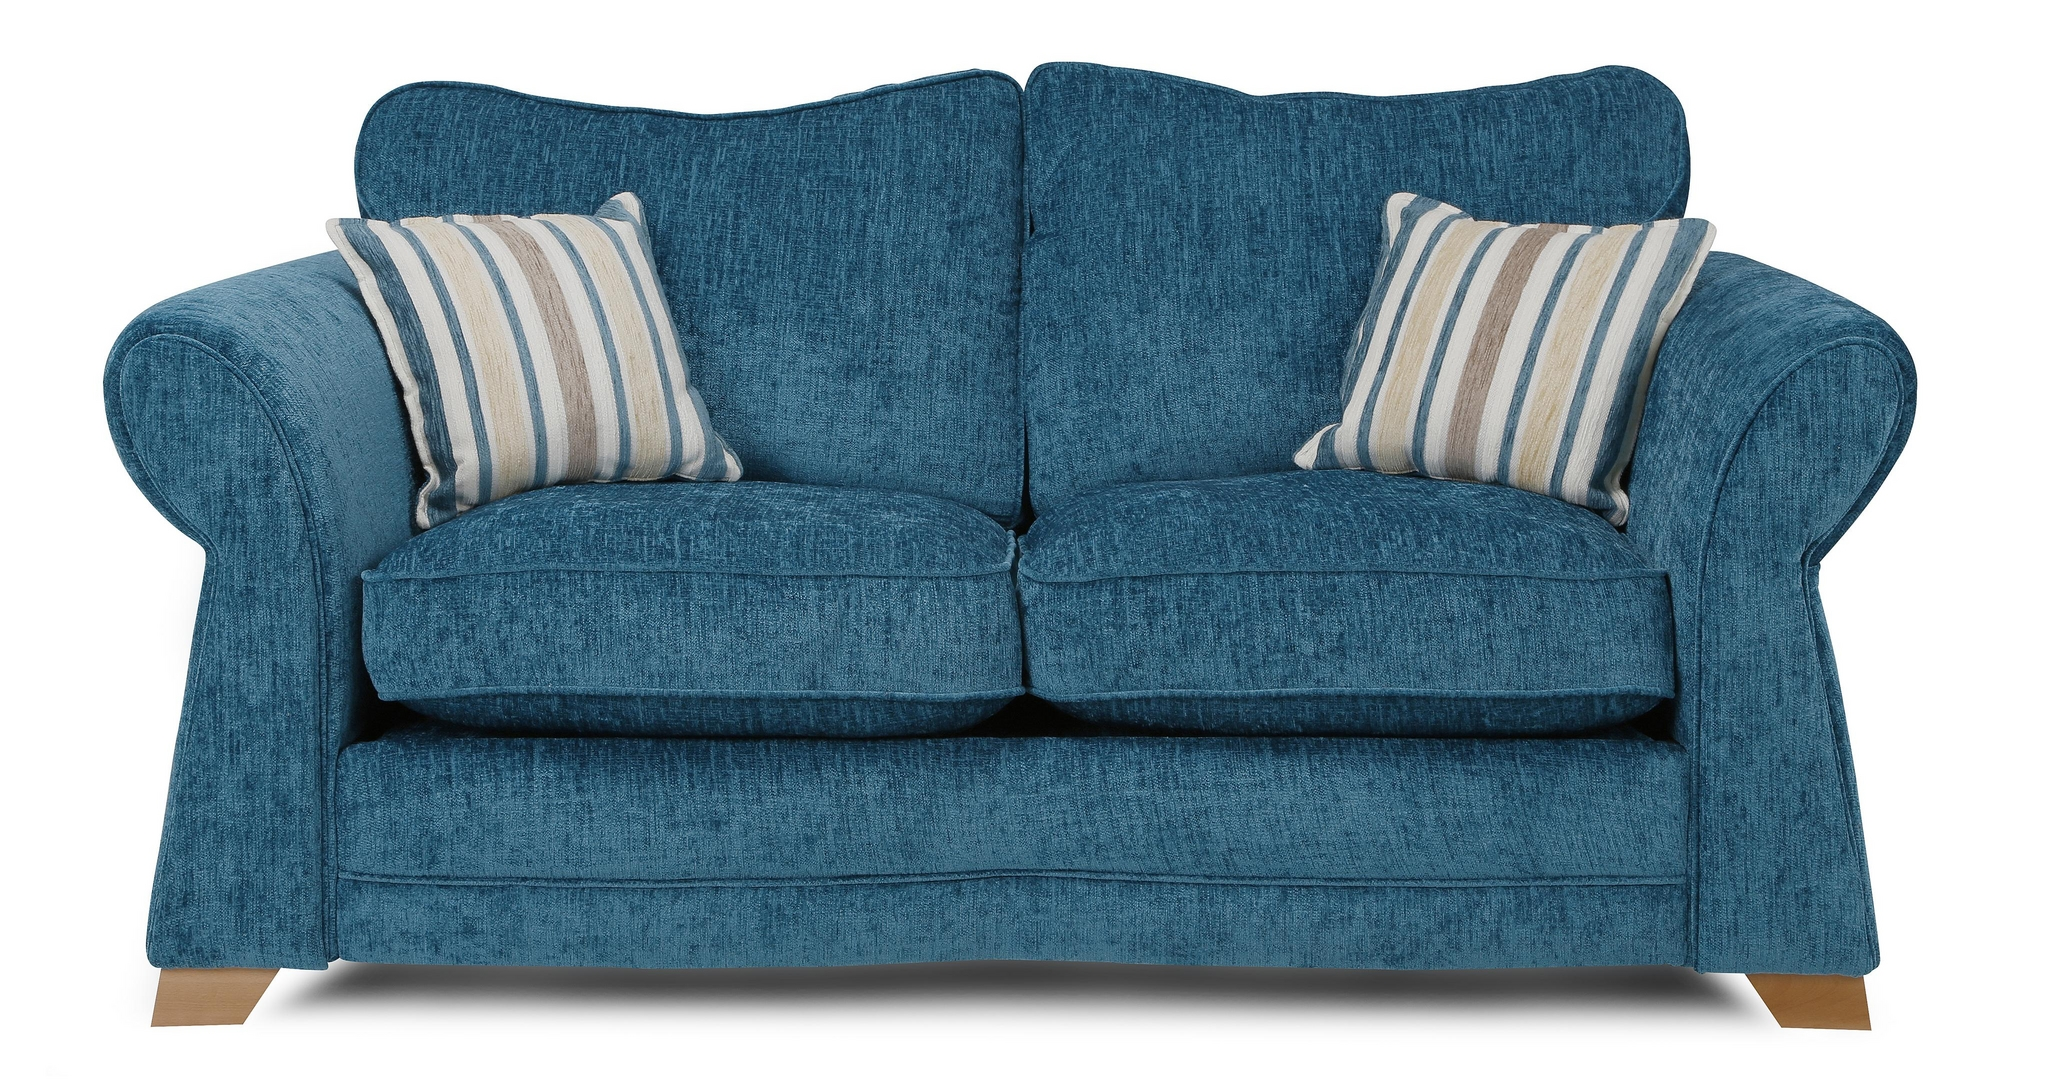 Dfs Elin Teal Formal Back 2 Seater Fabric Sofa Bed